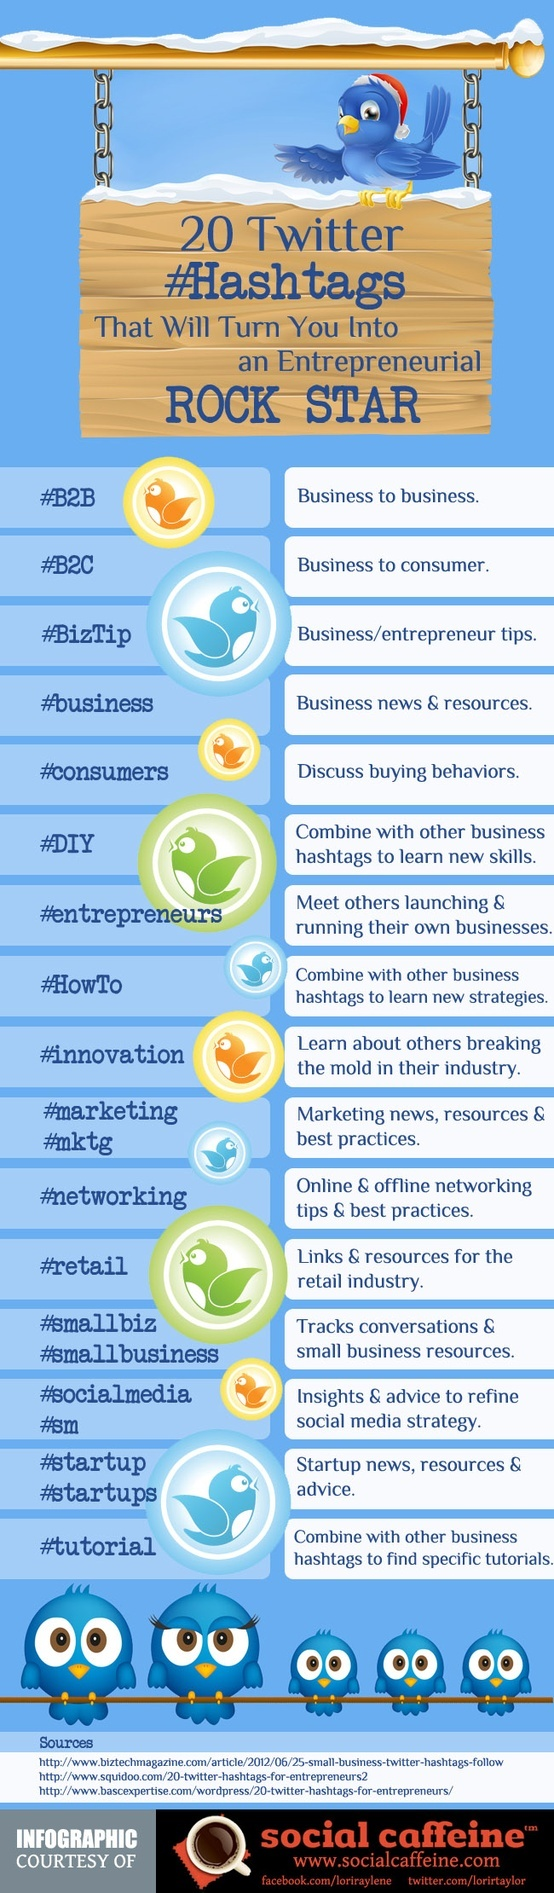 Twitter-Hashtags-for-Entrepreneurs